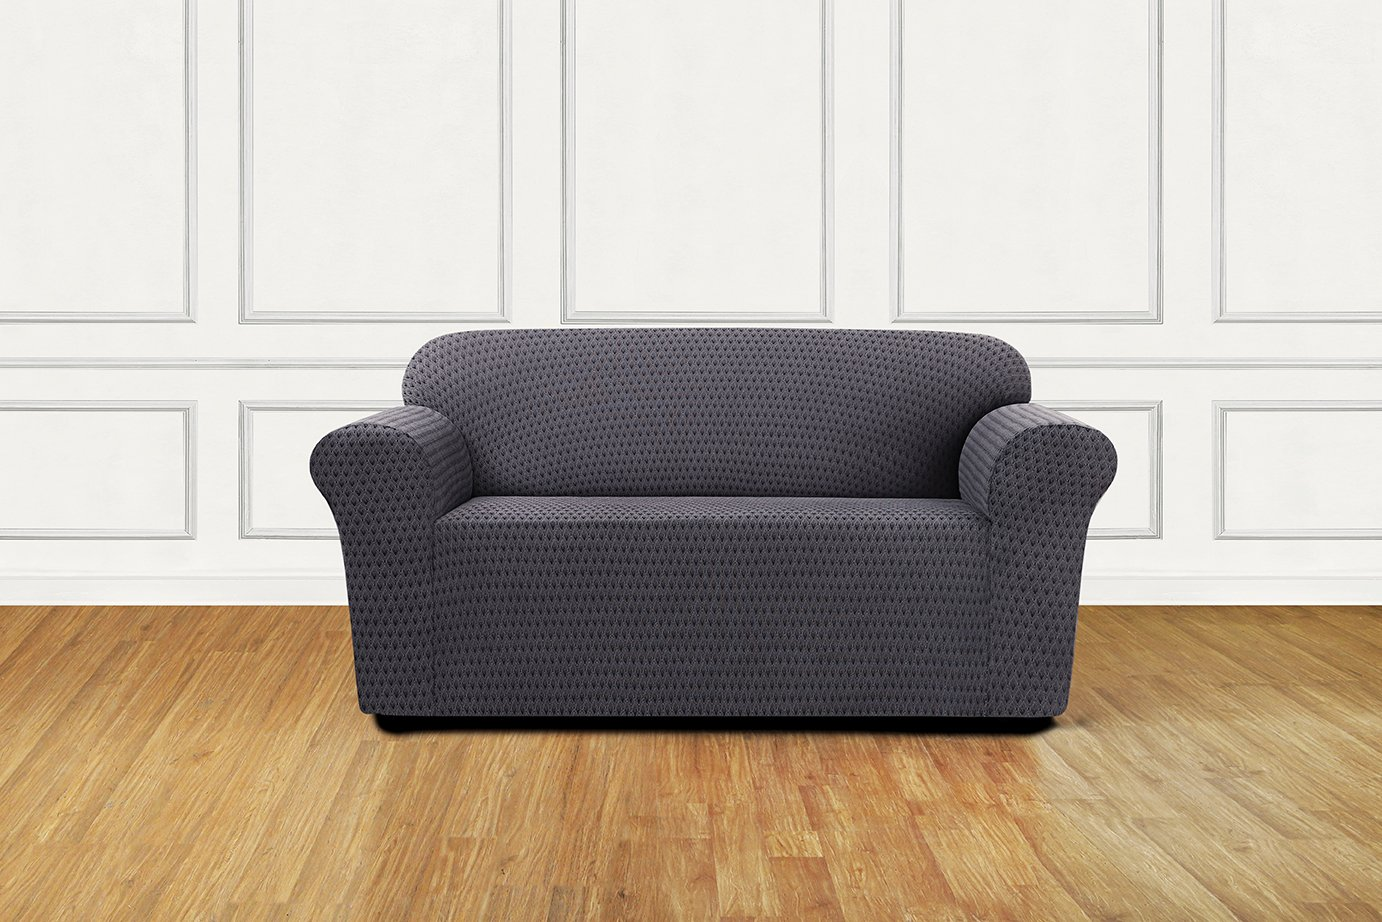 Sure Fit Stretch Sonya 1-Piece - Loveseat Slipcover  - Birch/Timber (SF45940) by Surefit (Image #2)